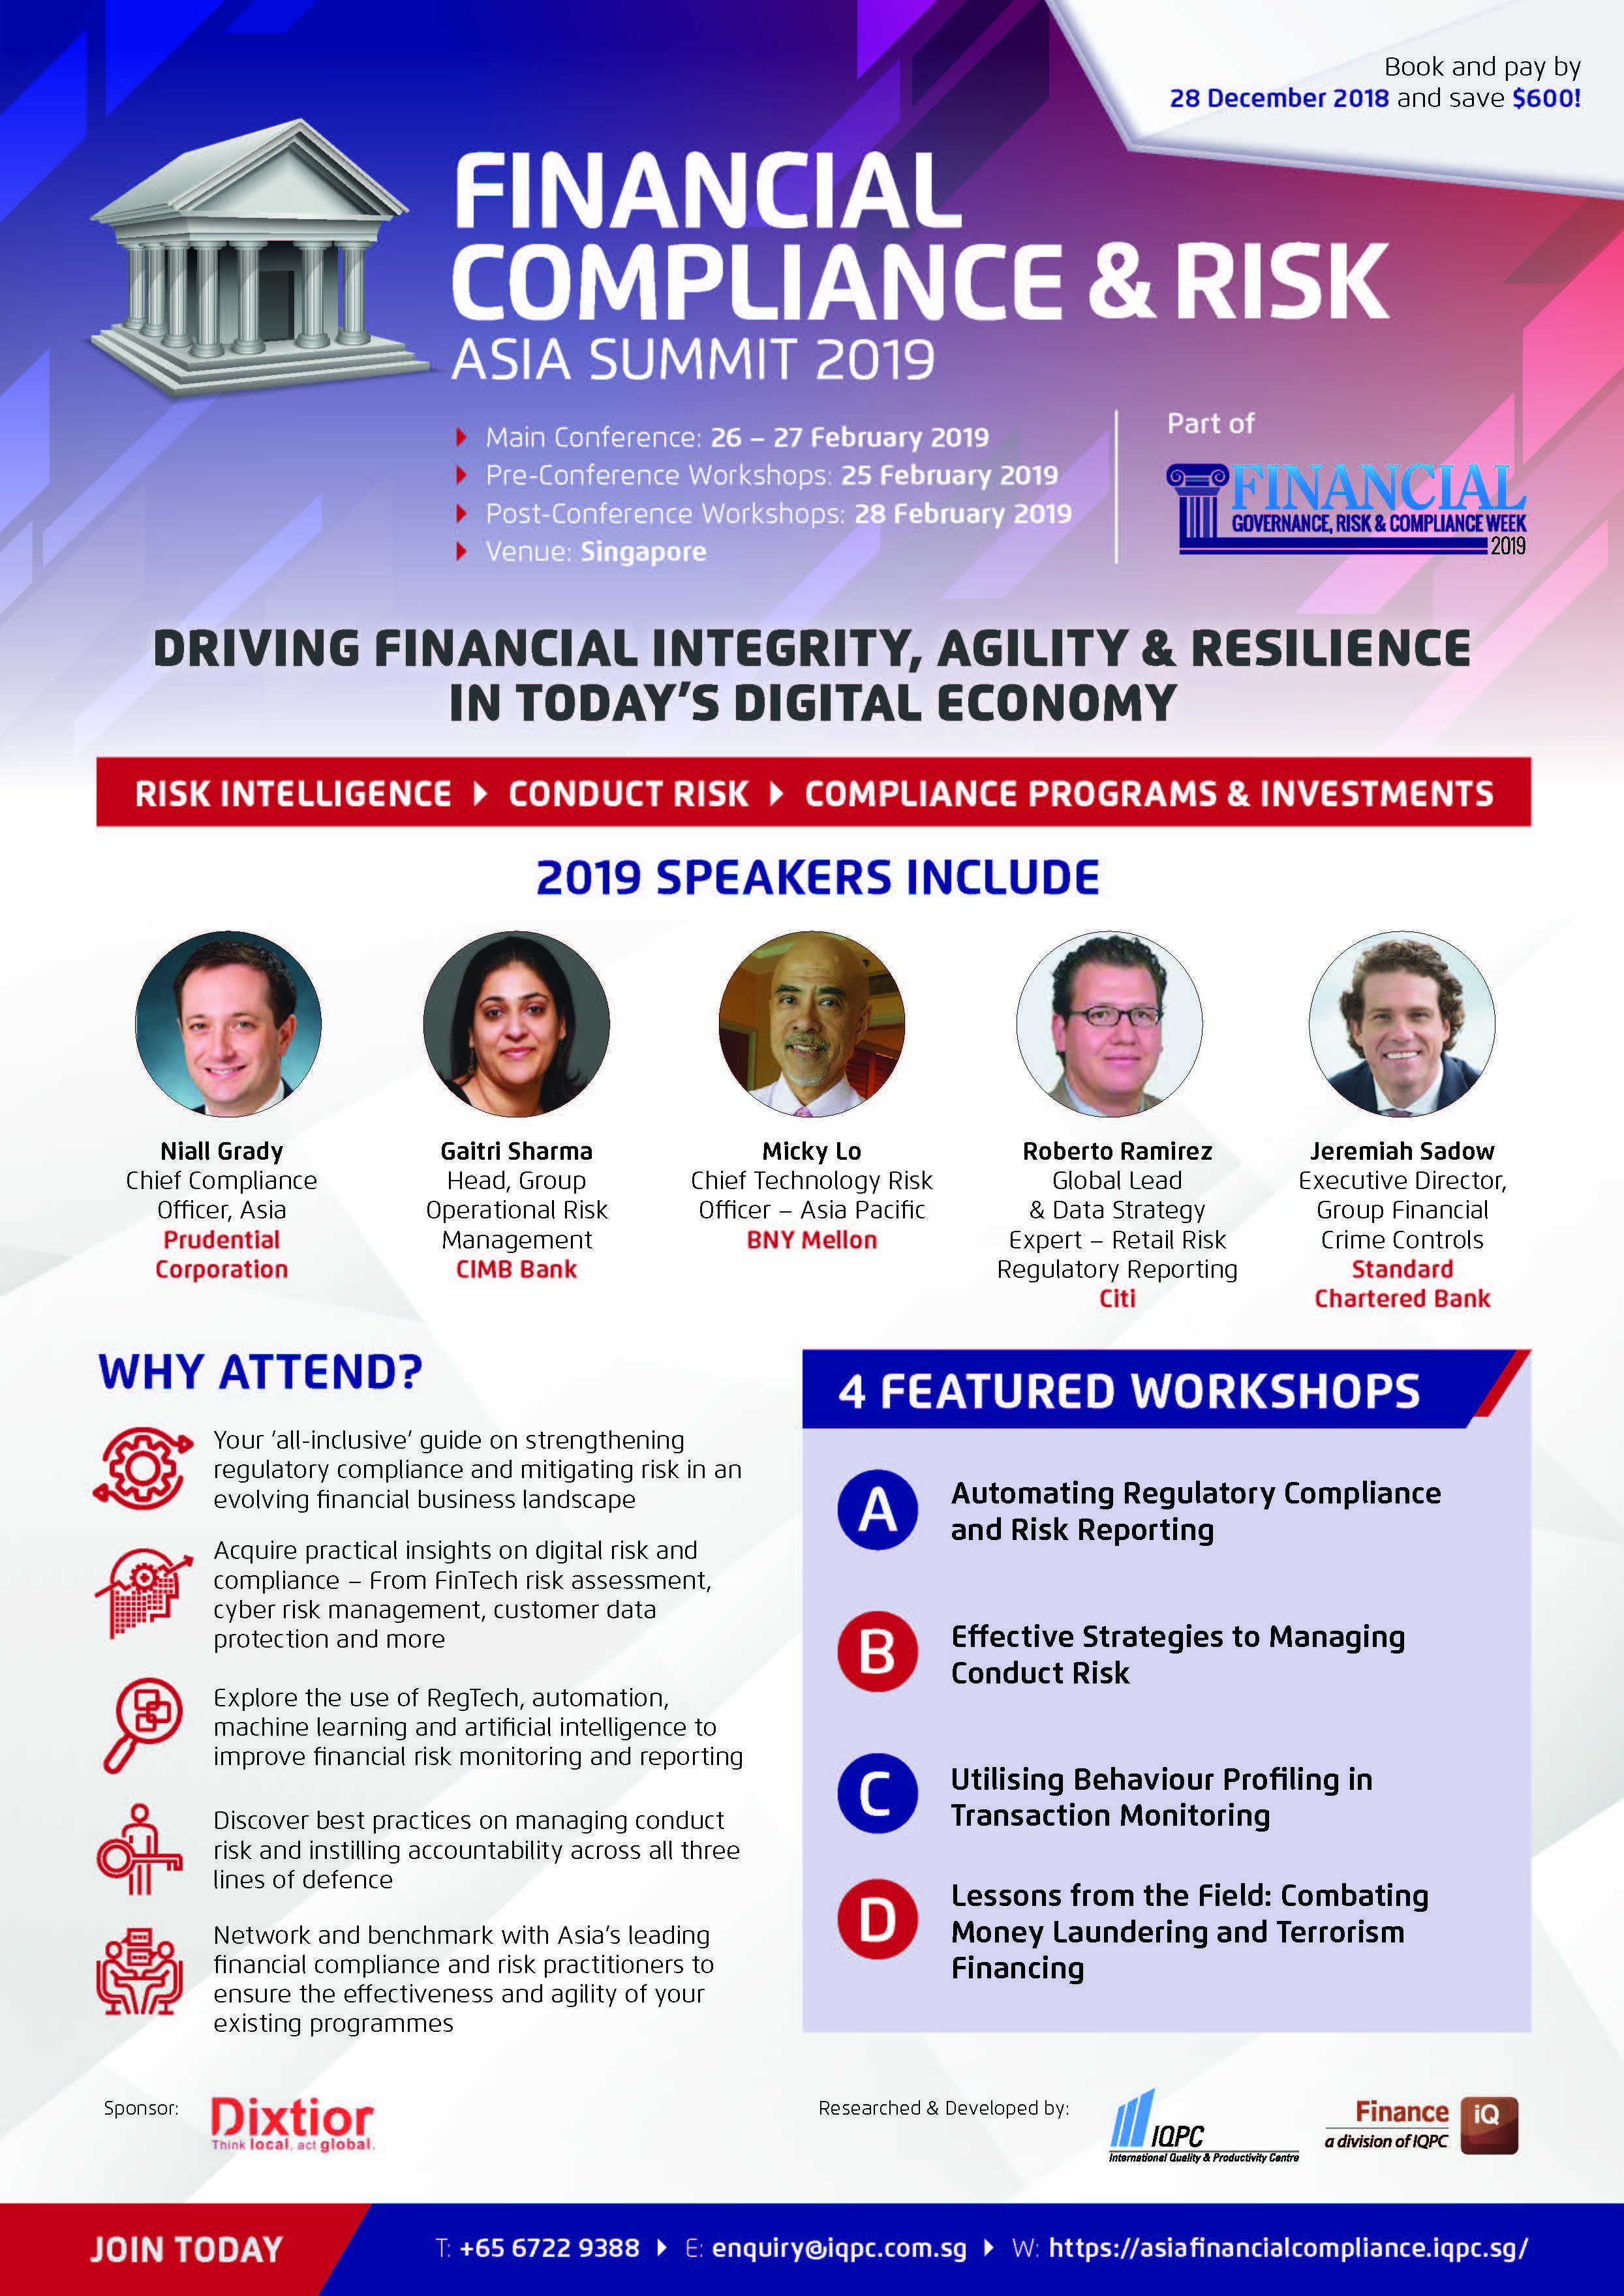 Download the Event Guide - 3rd Annual Financial Compliance & Risk Asia Summit Brochure